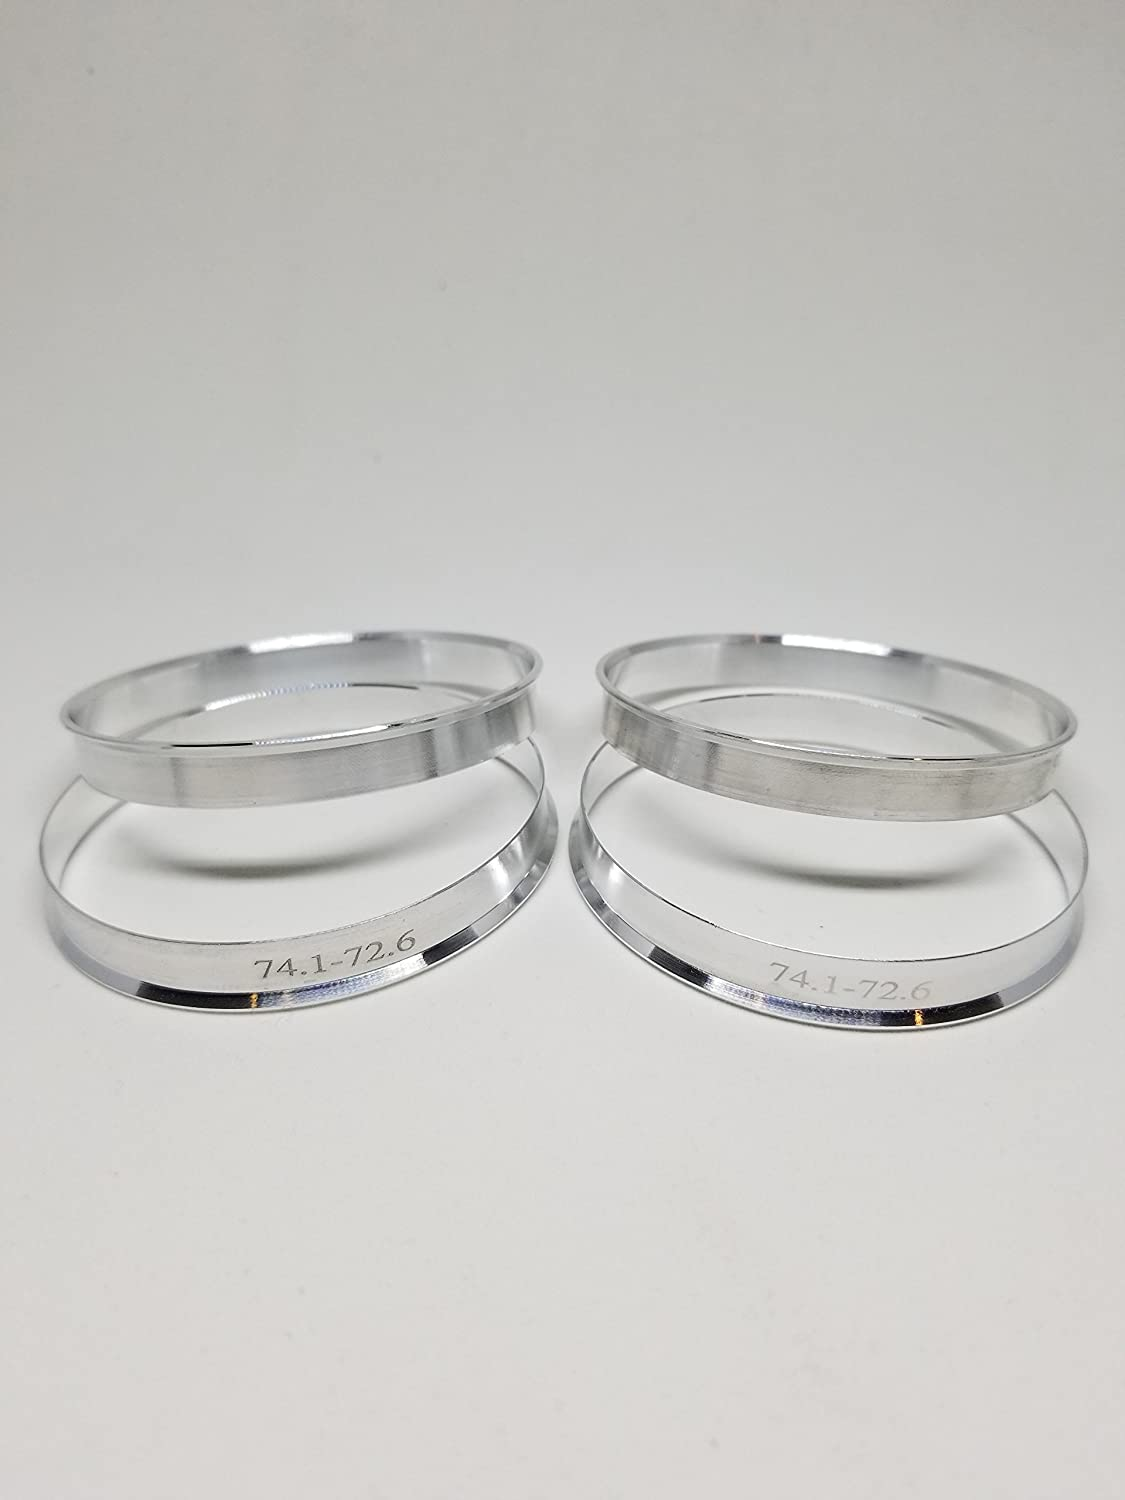 72.56mm OD to 66.6mm ID Circuit Performance Silver Aluminum Hub Centric Rings